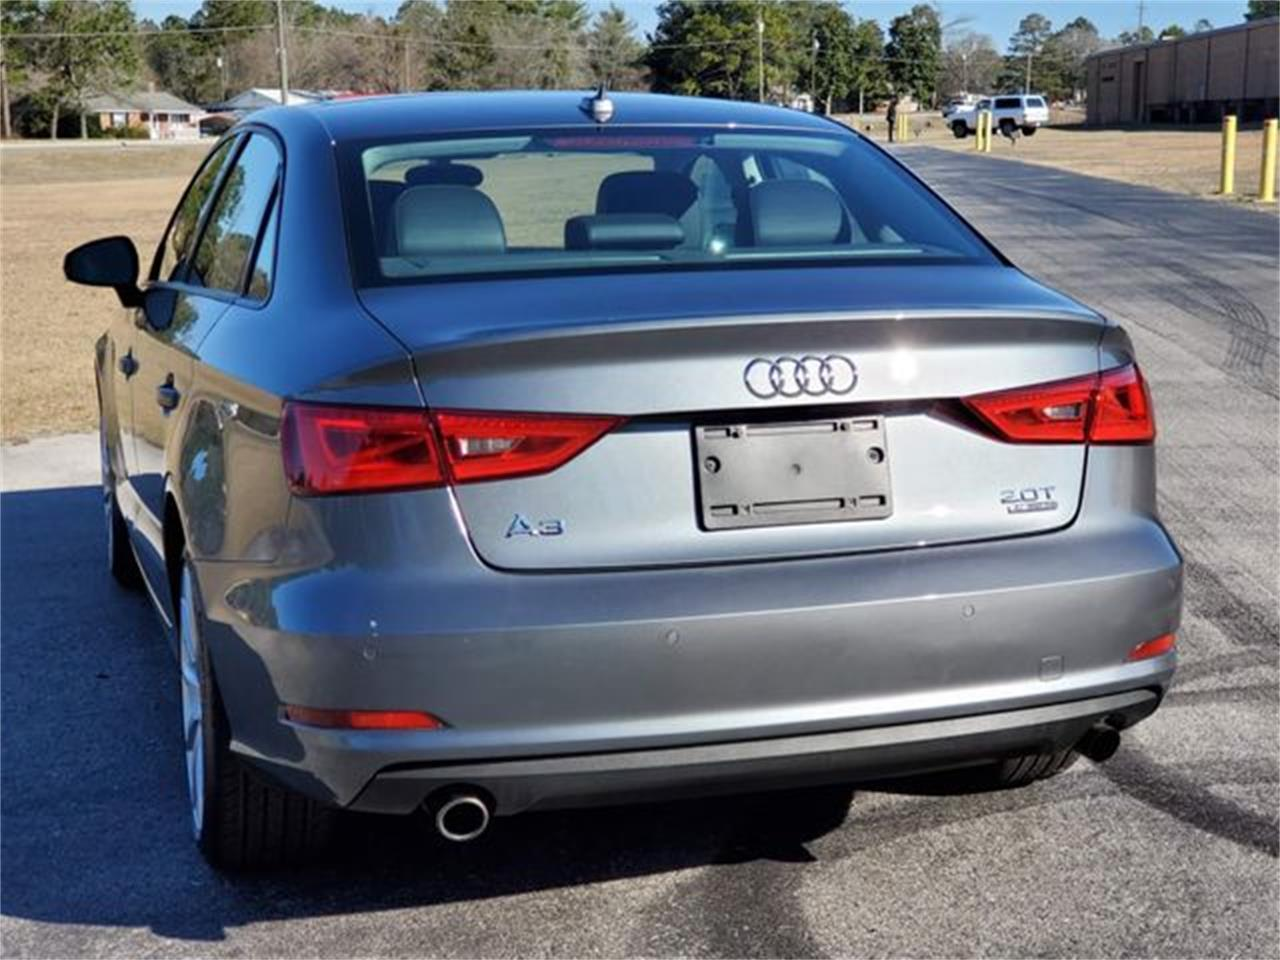 2015 Audi A3 (CC-1327788) for sale in Hope Mills, North Carolina